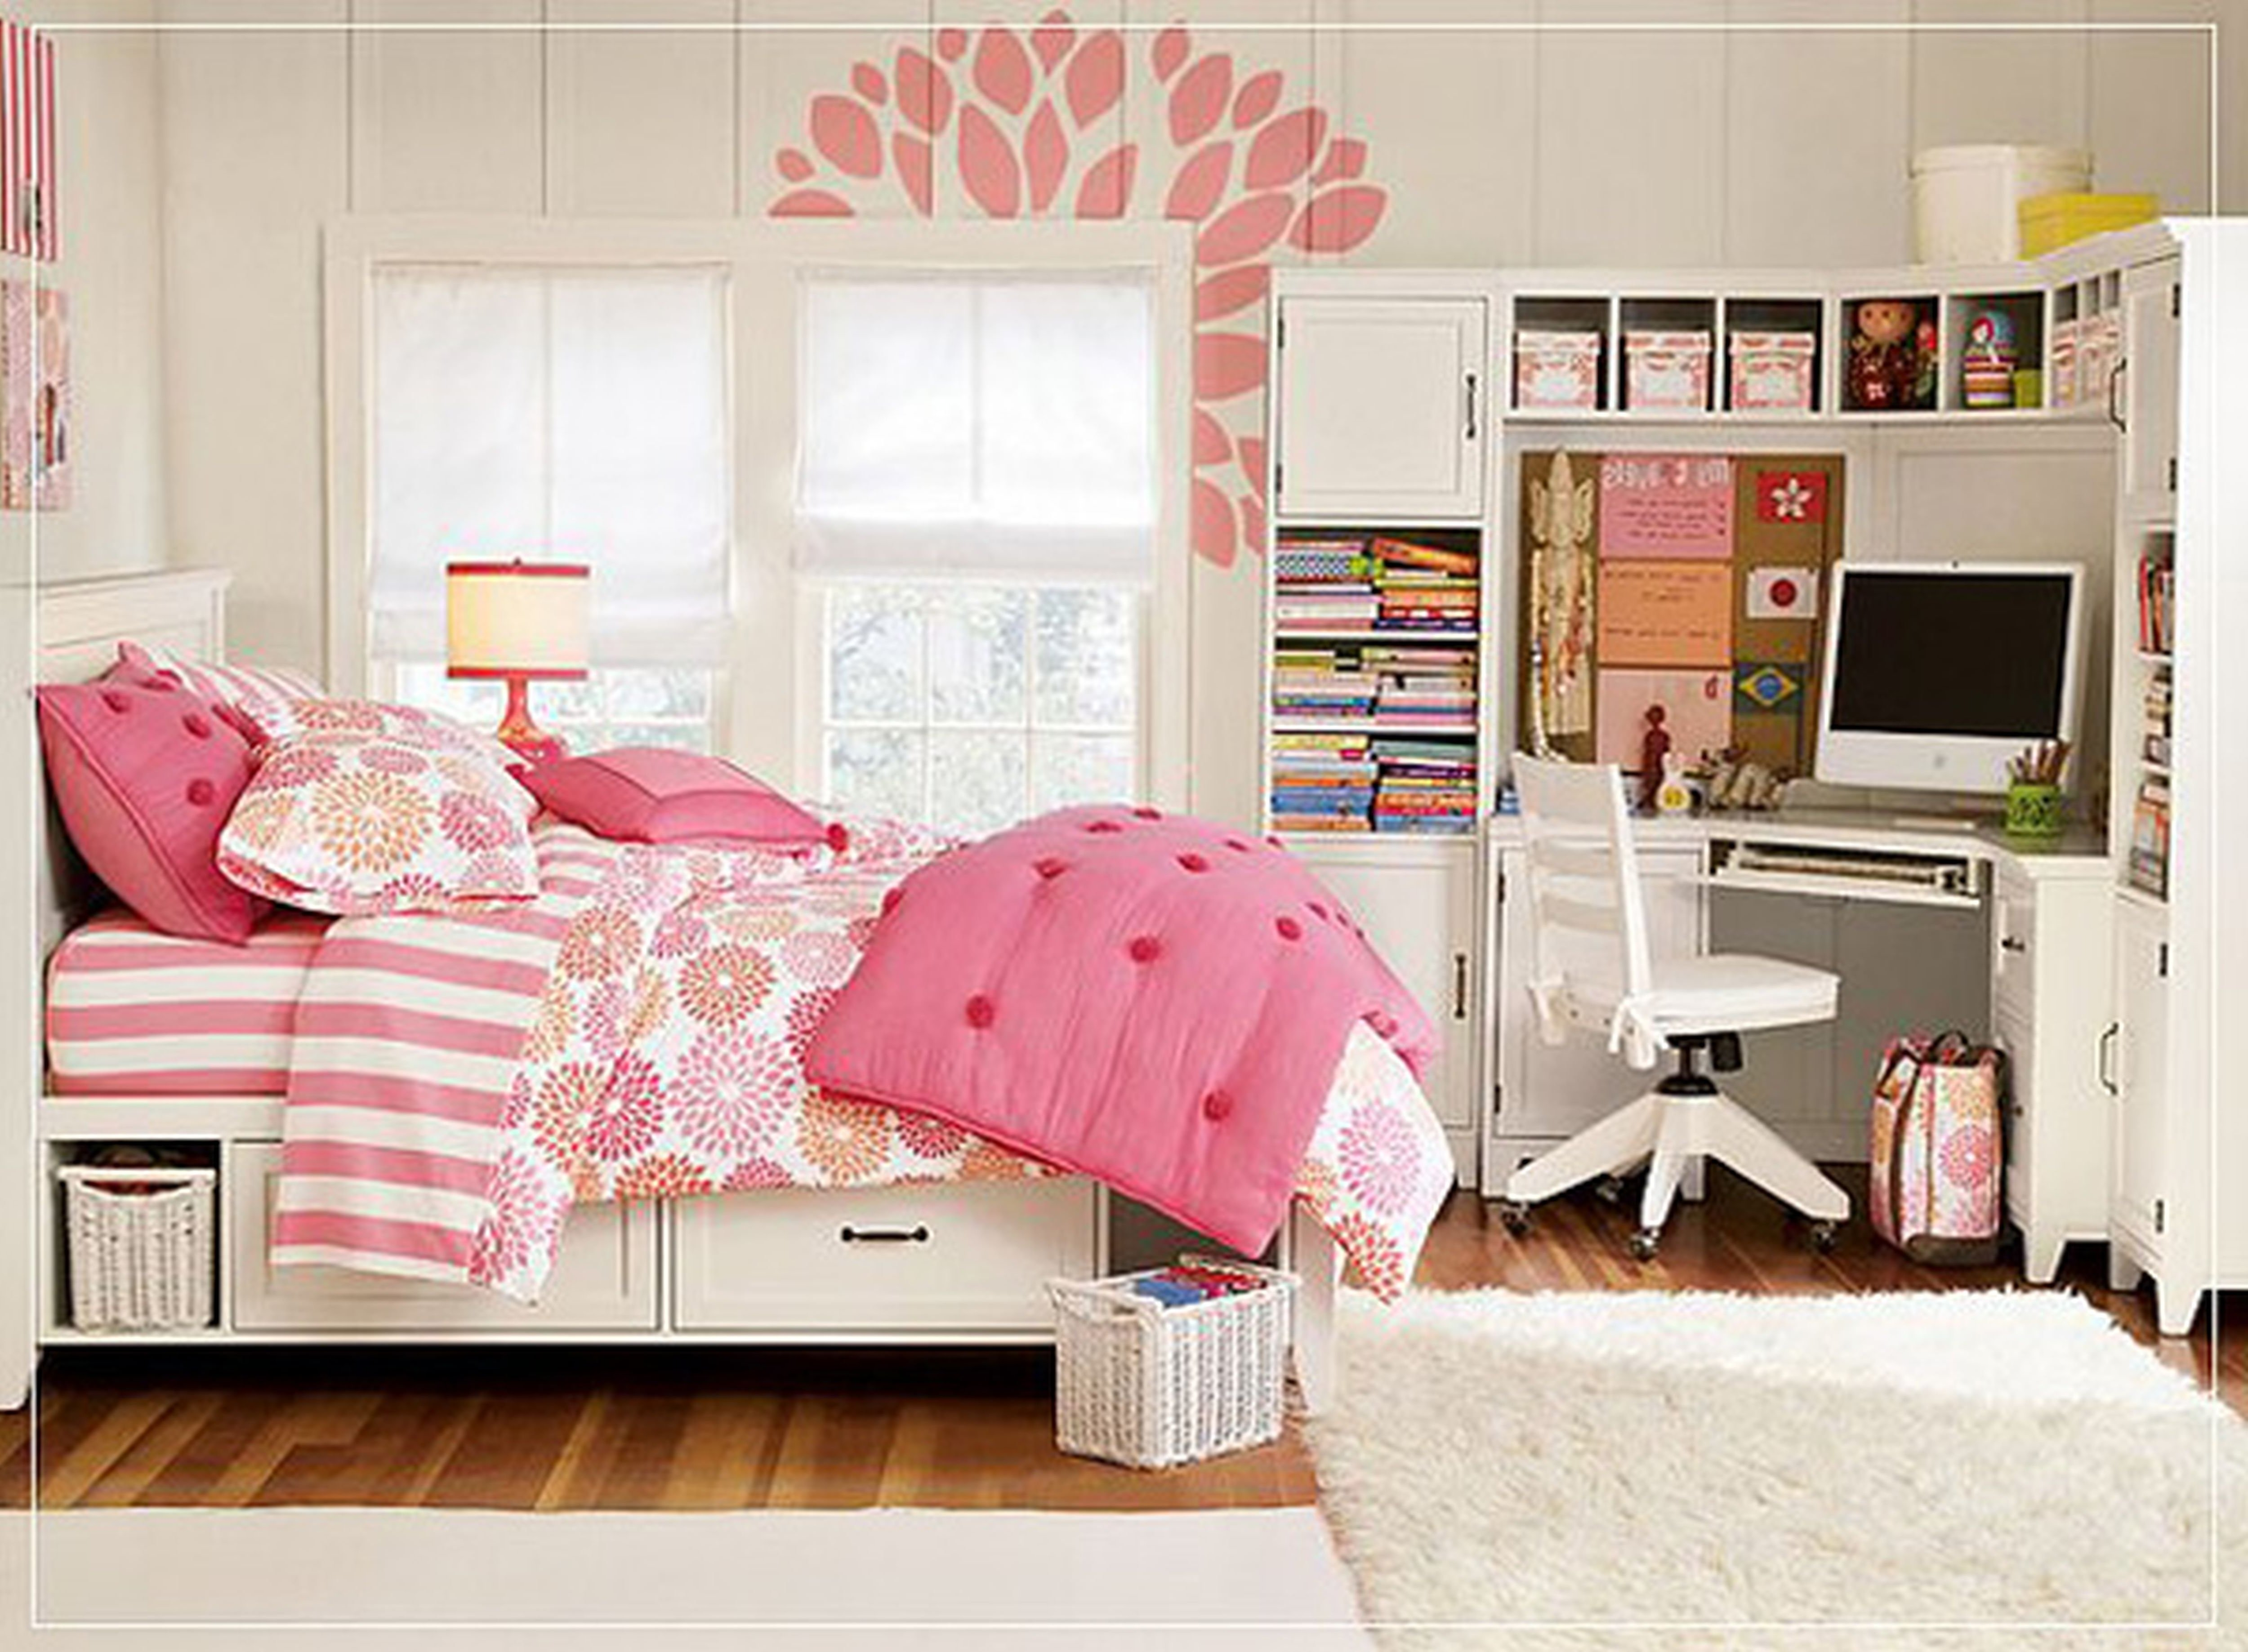 10 Elegant Cute Bedroom Ideas For Small Rooms pics of cute rooms beautifull cute bedroom ideas for small rooms